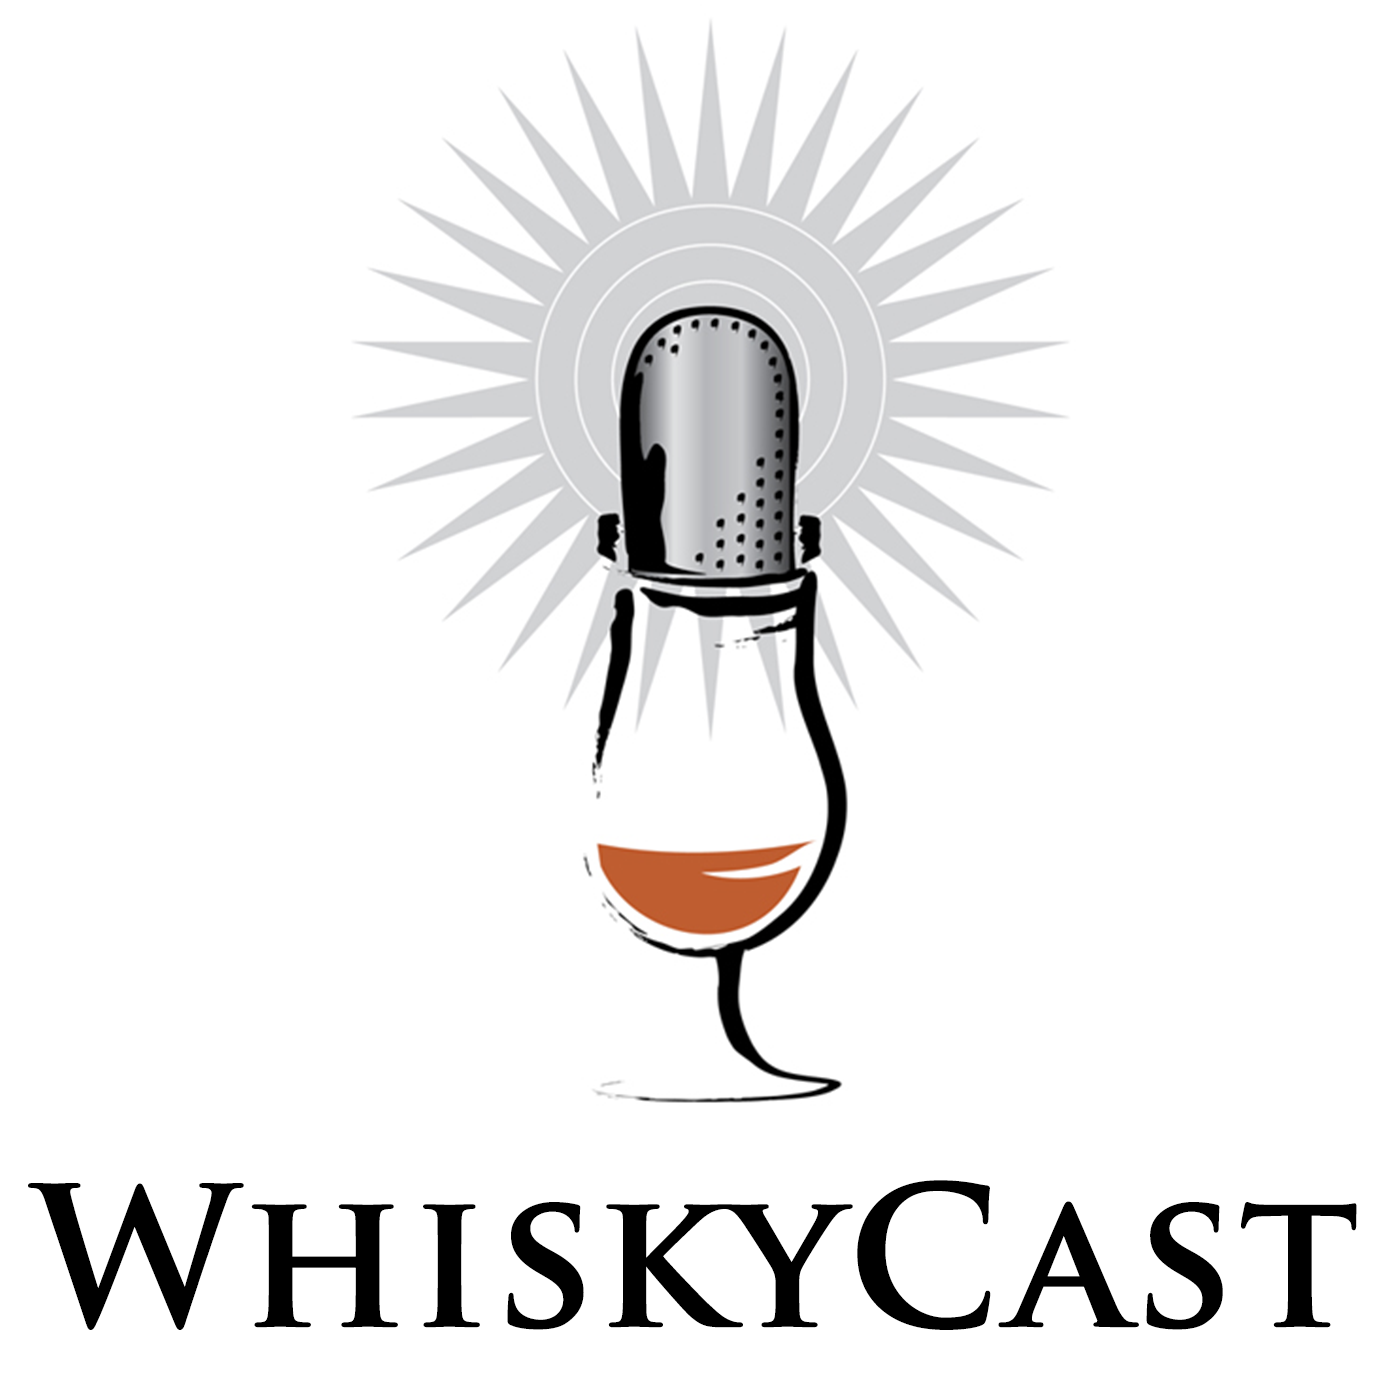 WhiskyCast Episode 455: December 8, 2013